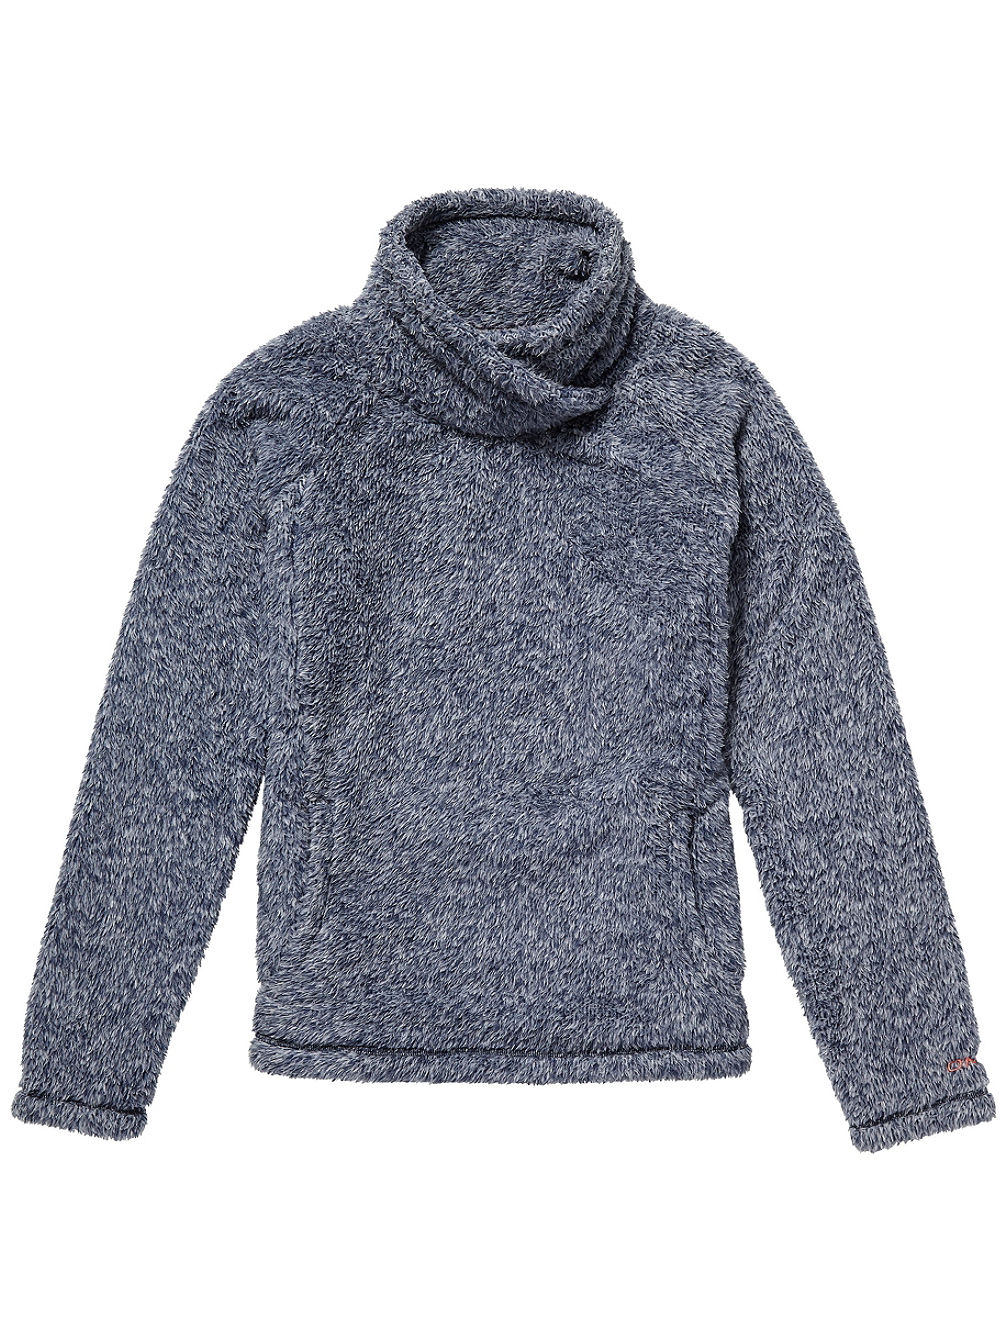 Wooly Fleece Pullover